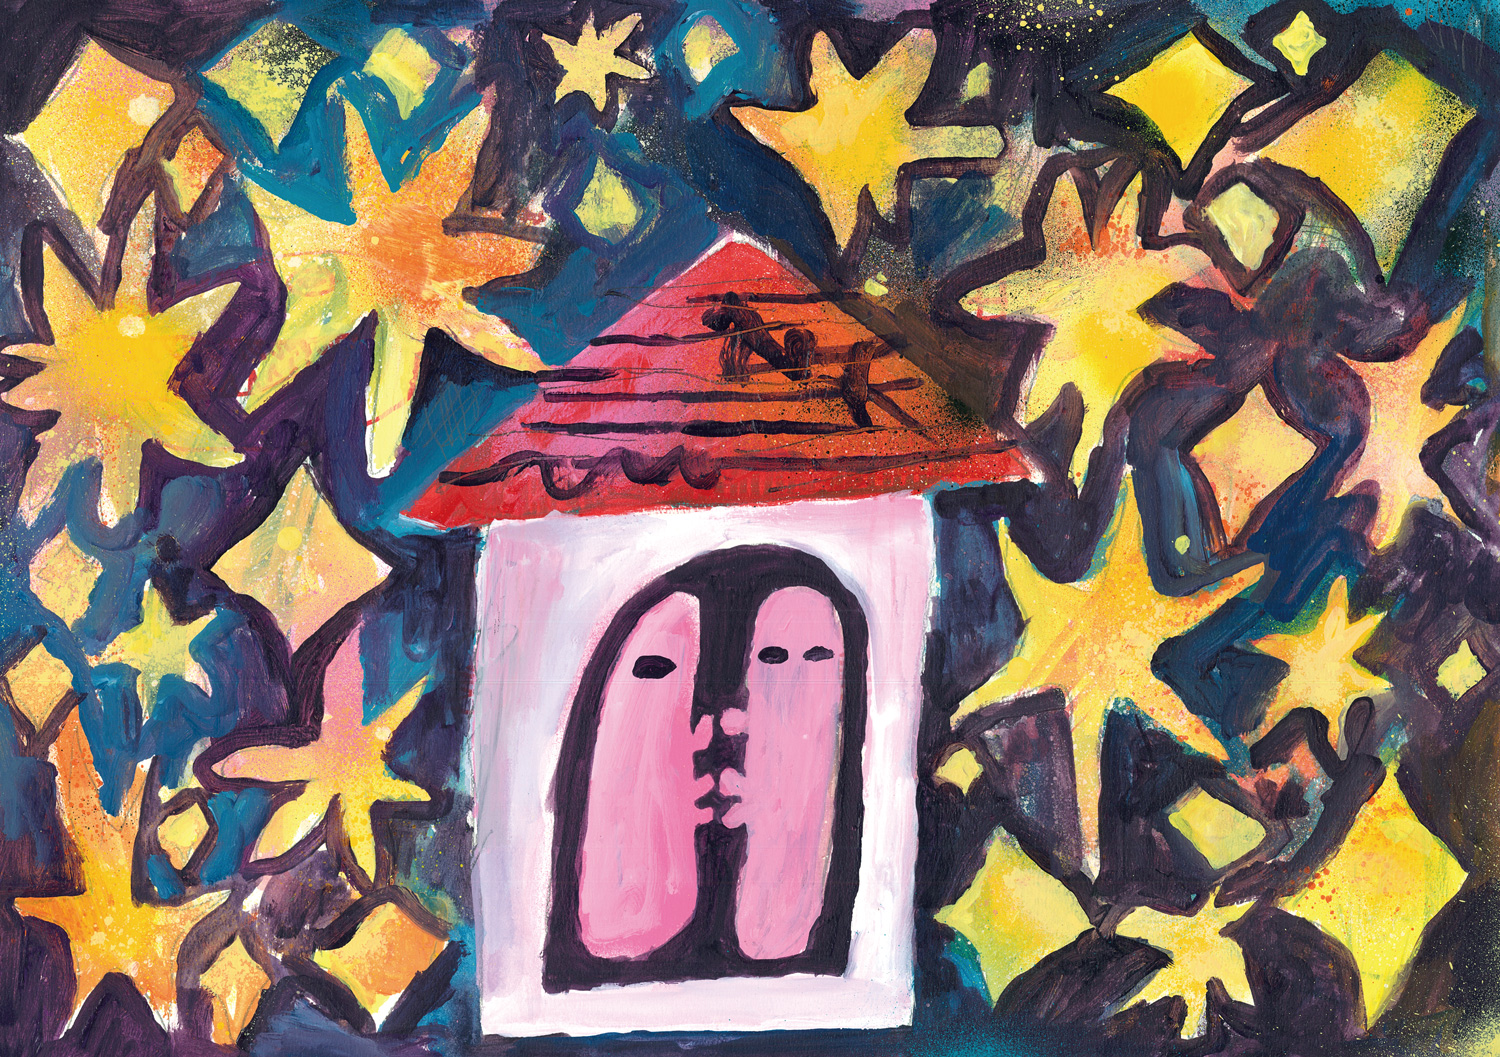 A painting of two heads in the stars by Kentaro Okawara.